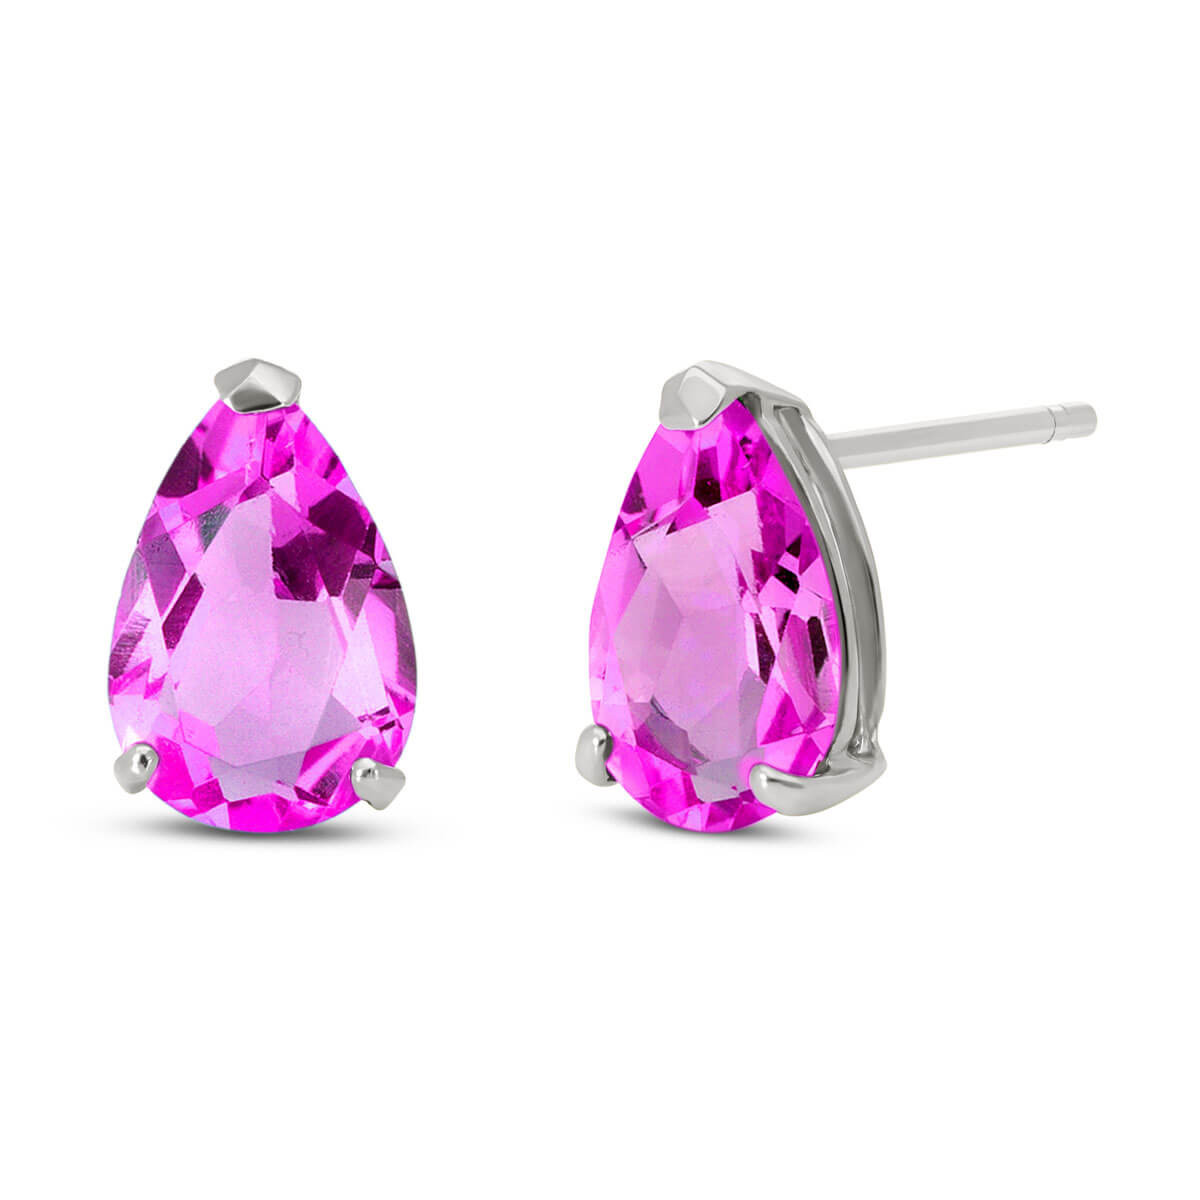 Pink Topaz Stud Earrings 3.15 ctw in 9ct White Gold